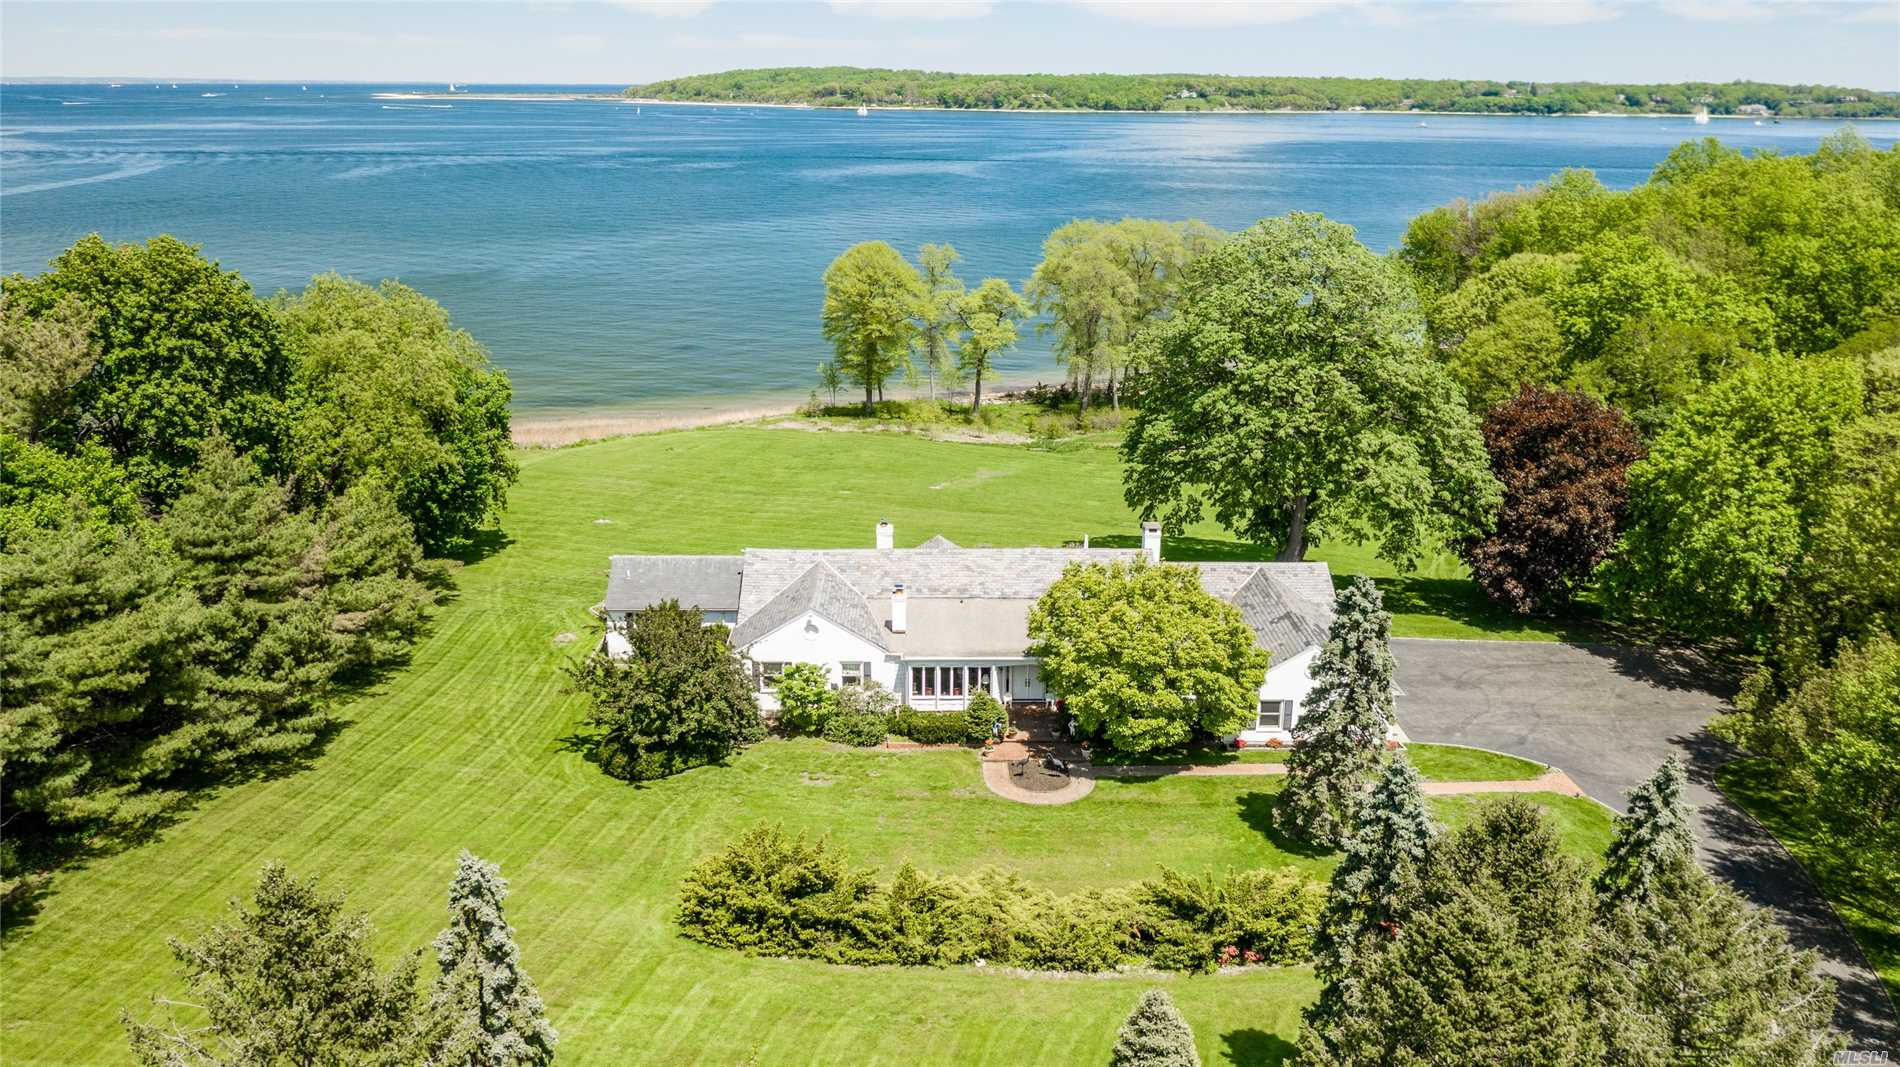 Centre Island Waterfront! Sprawling Brick Ranch Style Home On 4.28 Acres, Beautifully Situated On A Private Drive On The North End Of Centre Island! Enjoy Sweeping Views Of Cold Spring Harbor & Long Island Sound From Most Rooms.This Special Property With Rolling Lawns Offers Direct Access To 211 Feet Of Private Beachfront. A Wonderful Hamptons Alternative With A Reasonable Manhattan Commute Minutes From The Charming Seaside Villages Of Bayville & Oyster Bay! Perfect Summer Or Year Round Living!